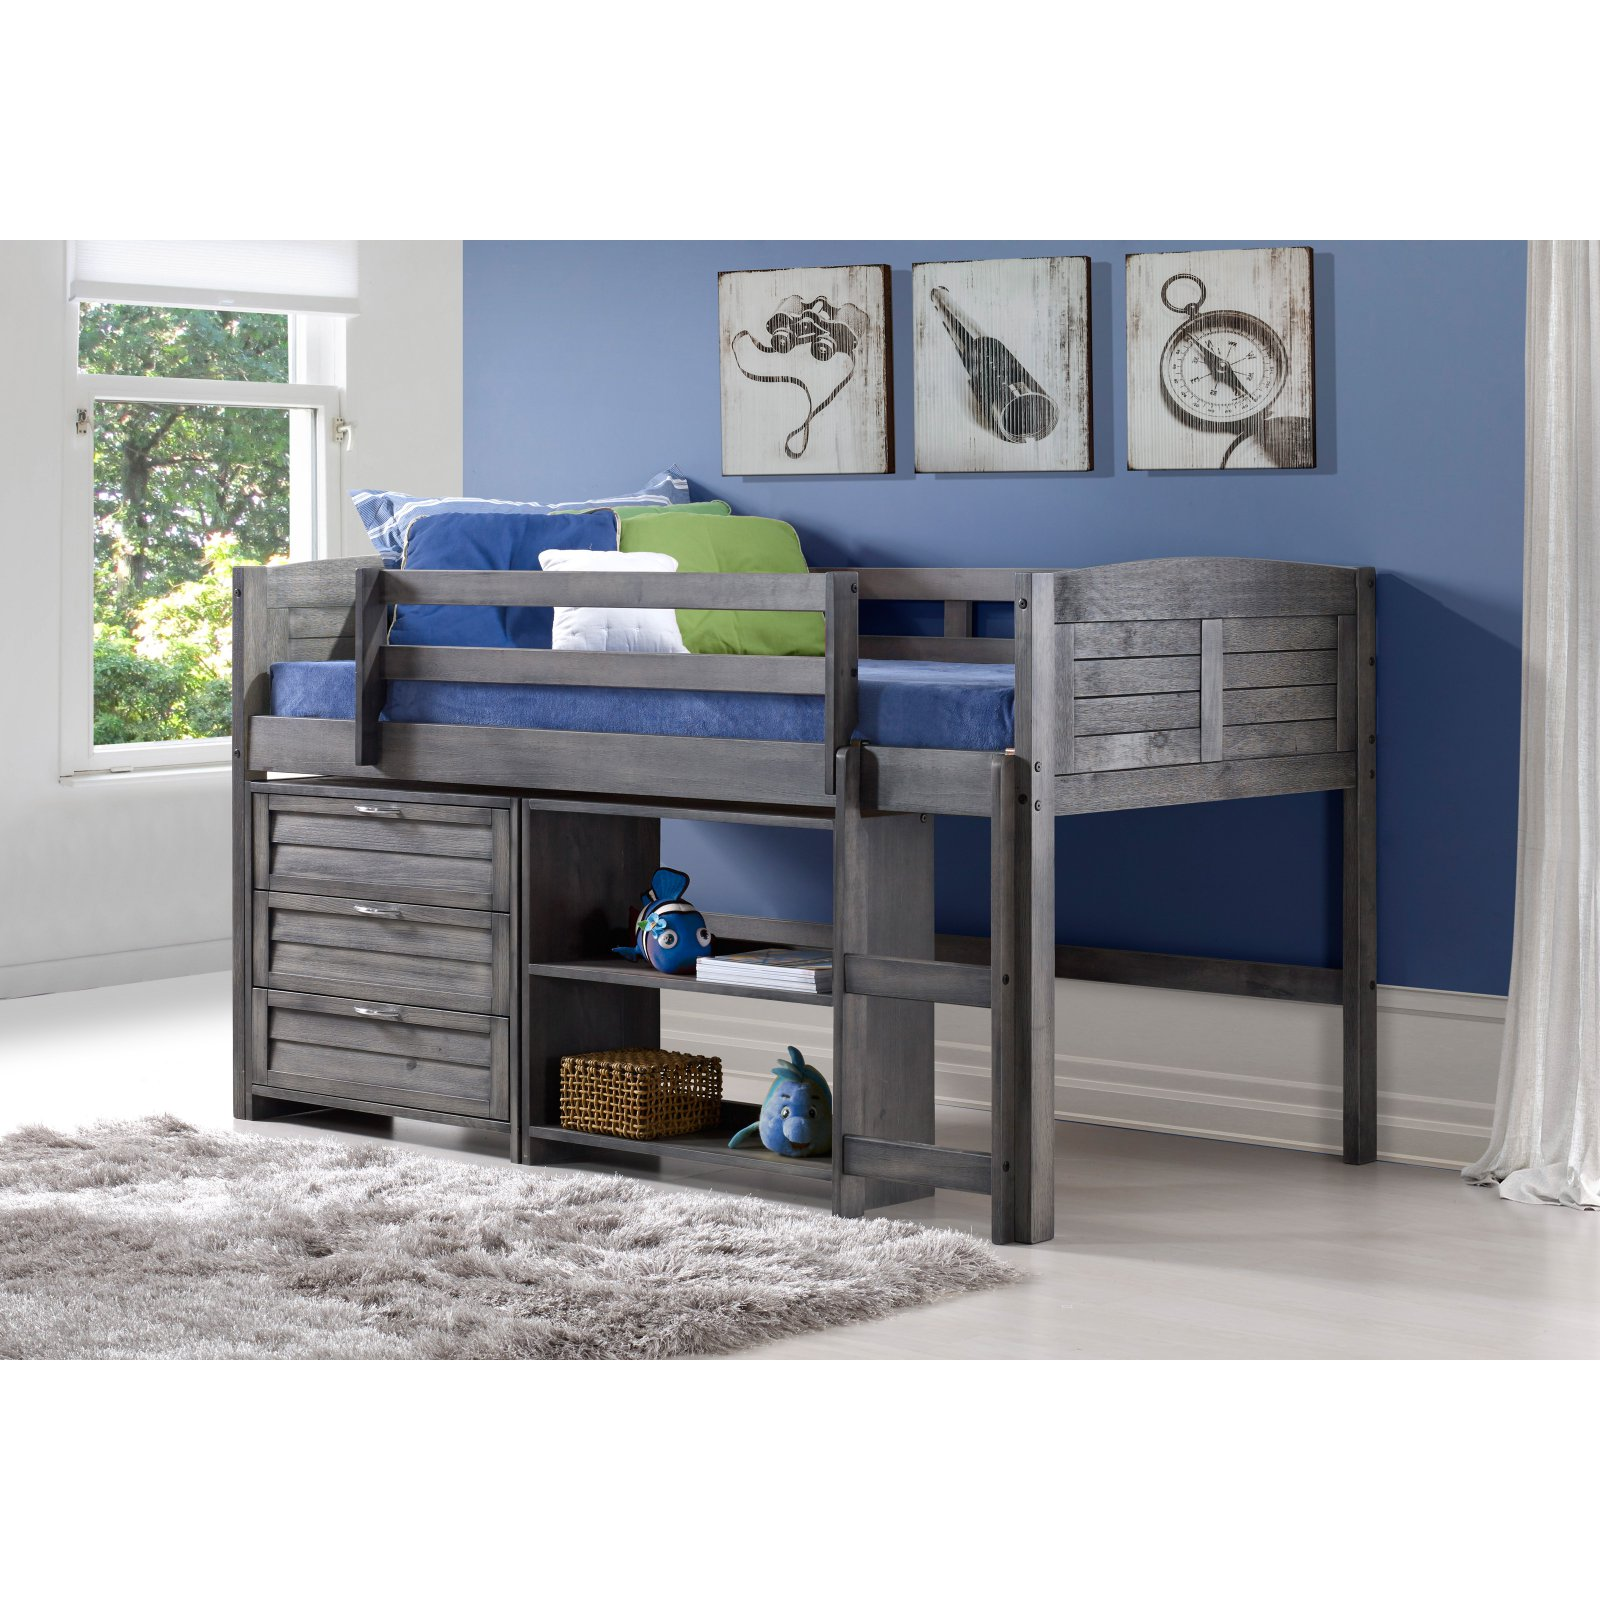 Donco Twin Louver Low Loft with Storage